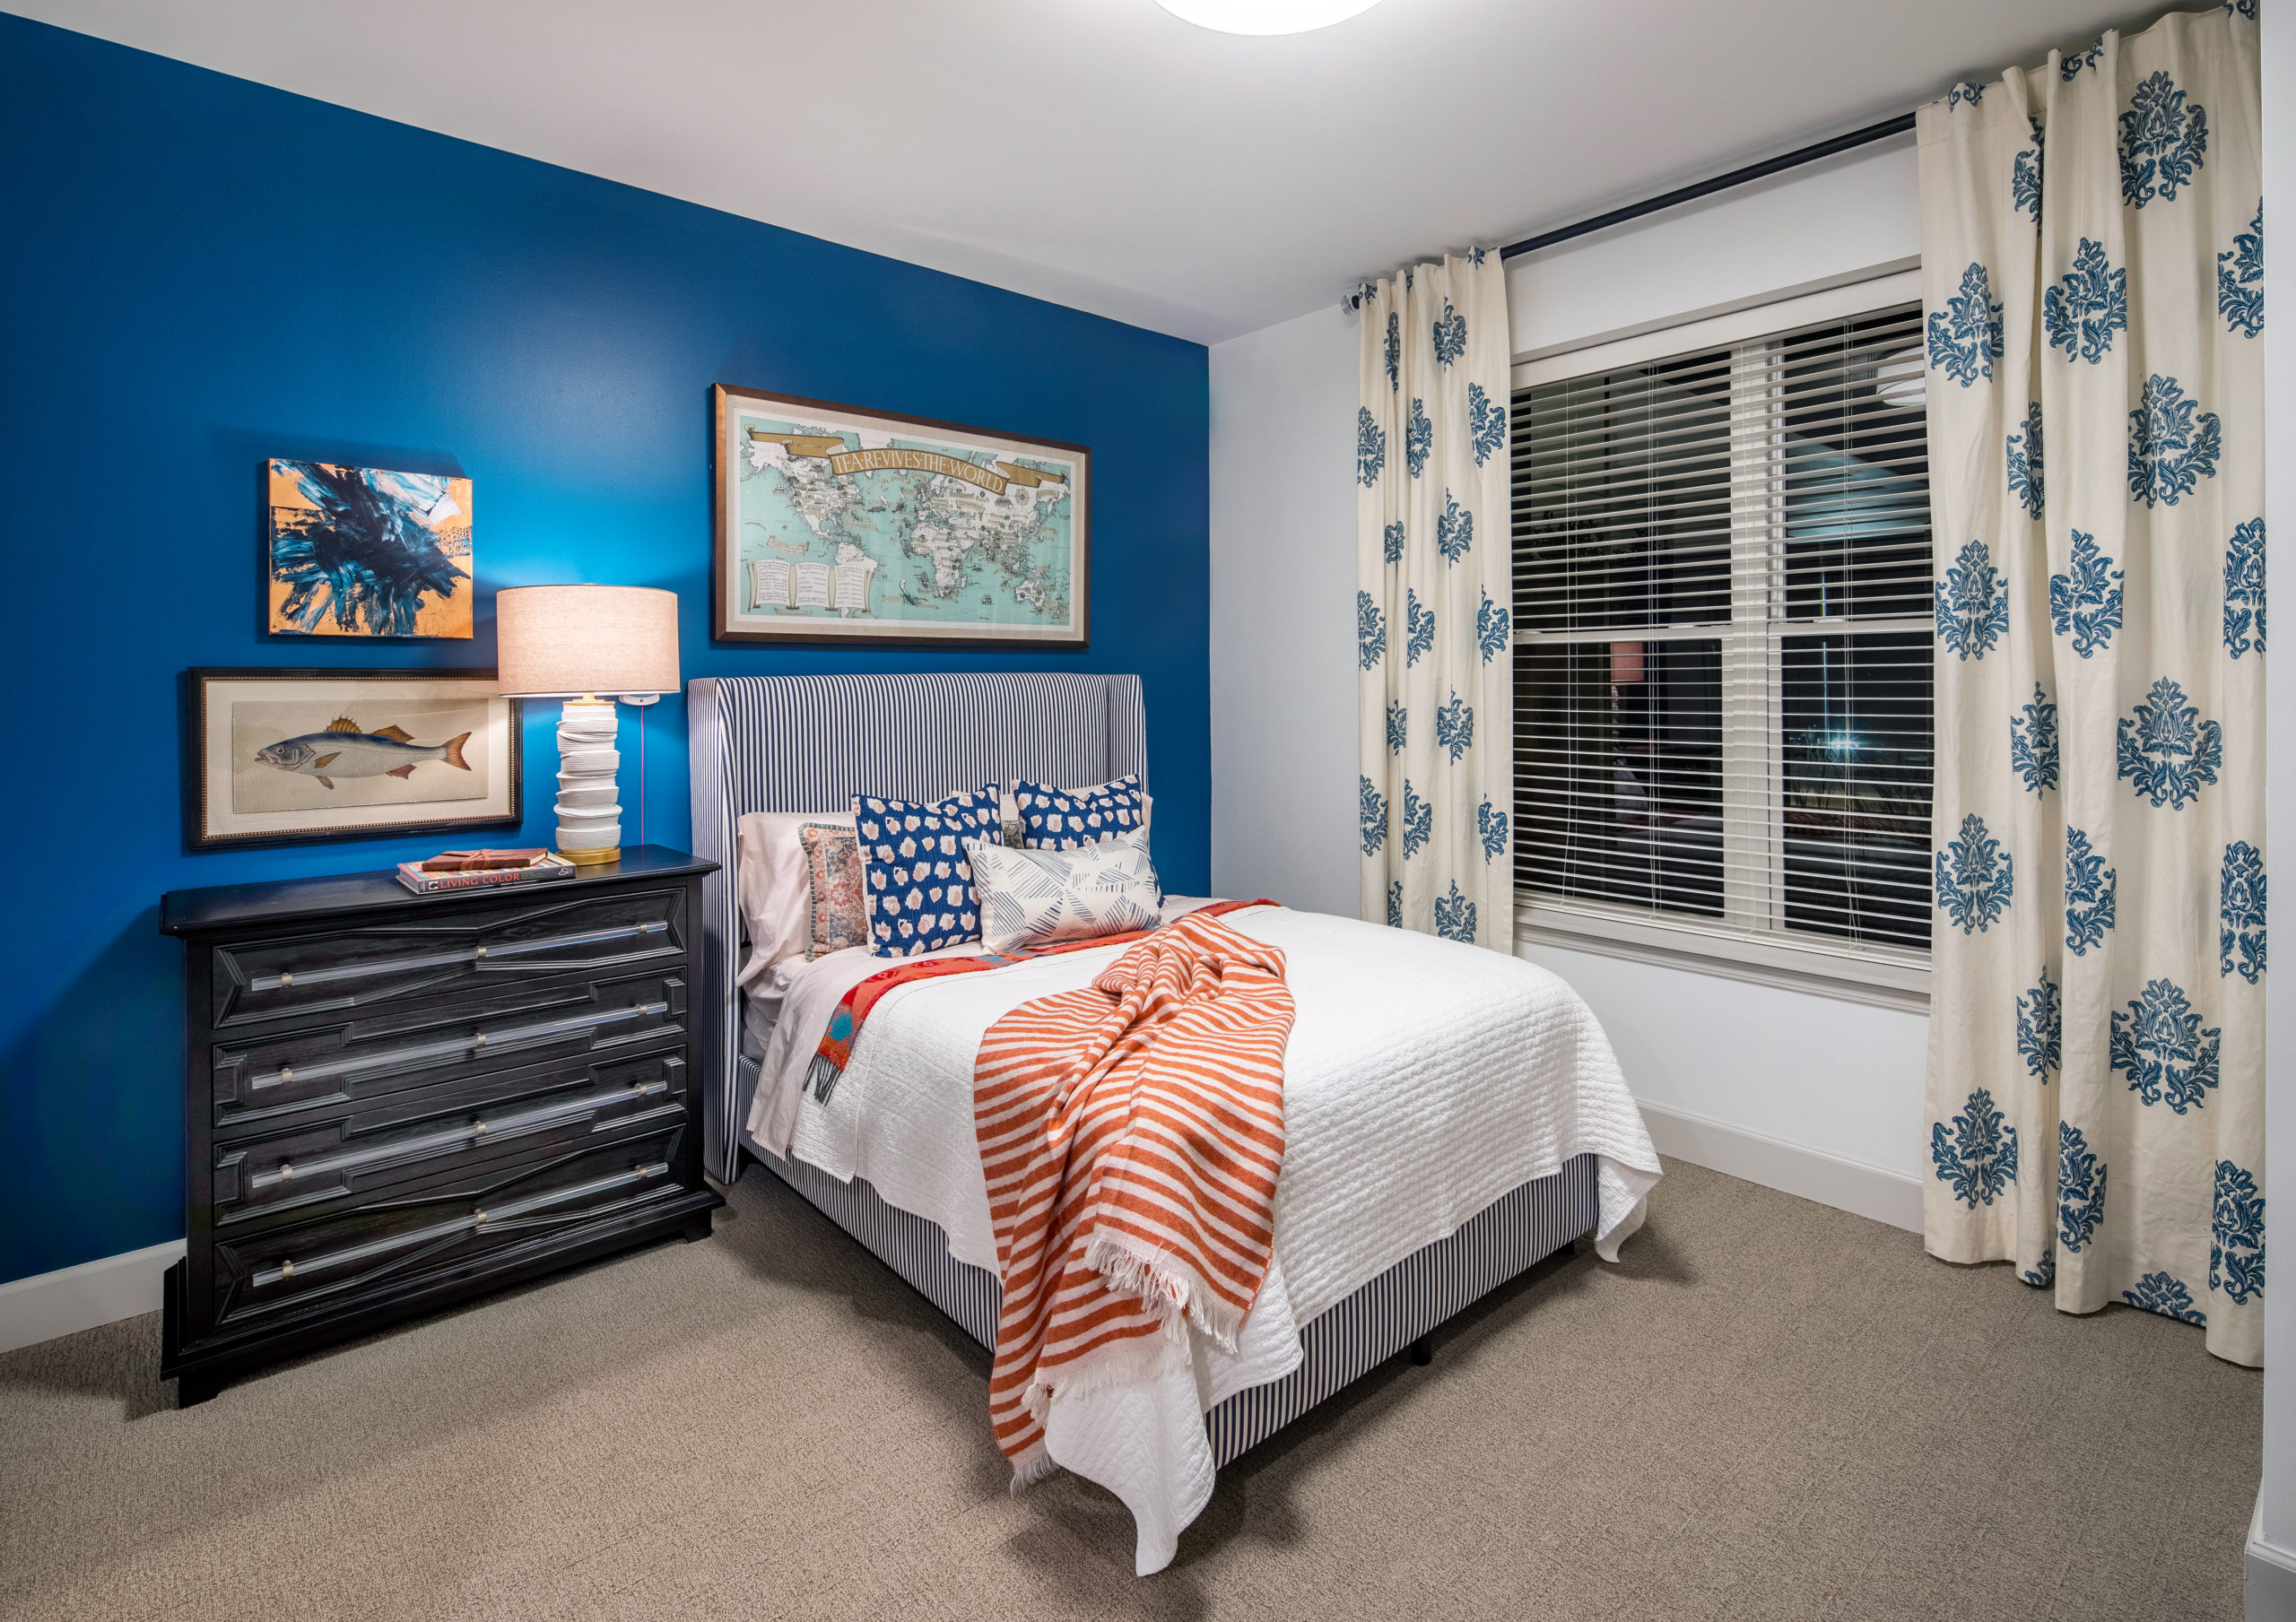 White bed with colorful throw and pillow, black nightstand with lamp and artwork above window and curtains at right in Longleaf memory care model apartment